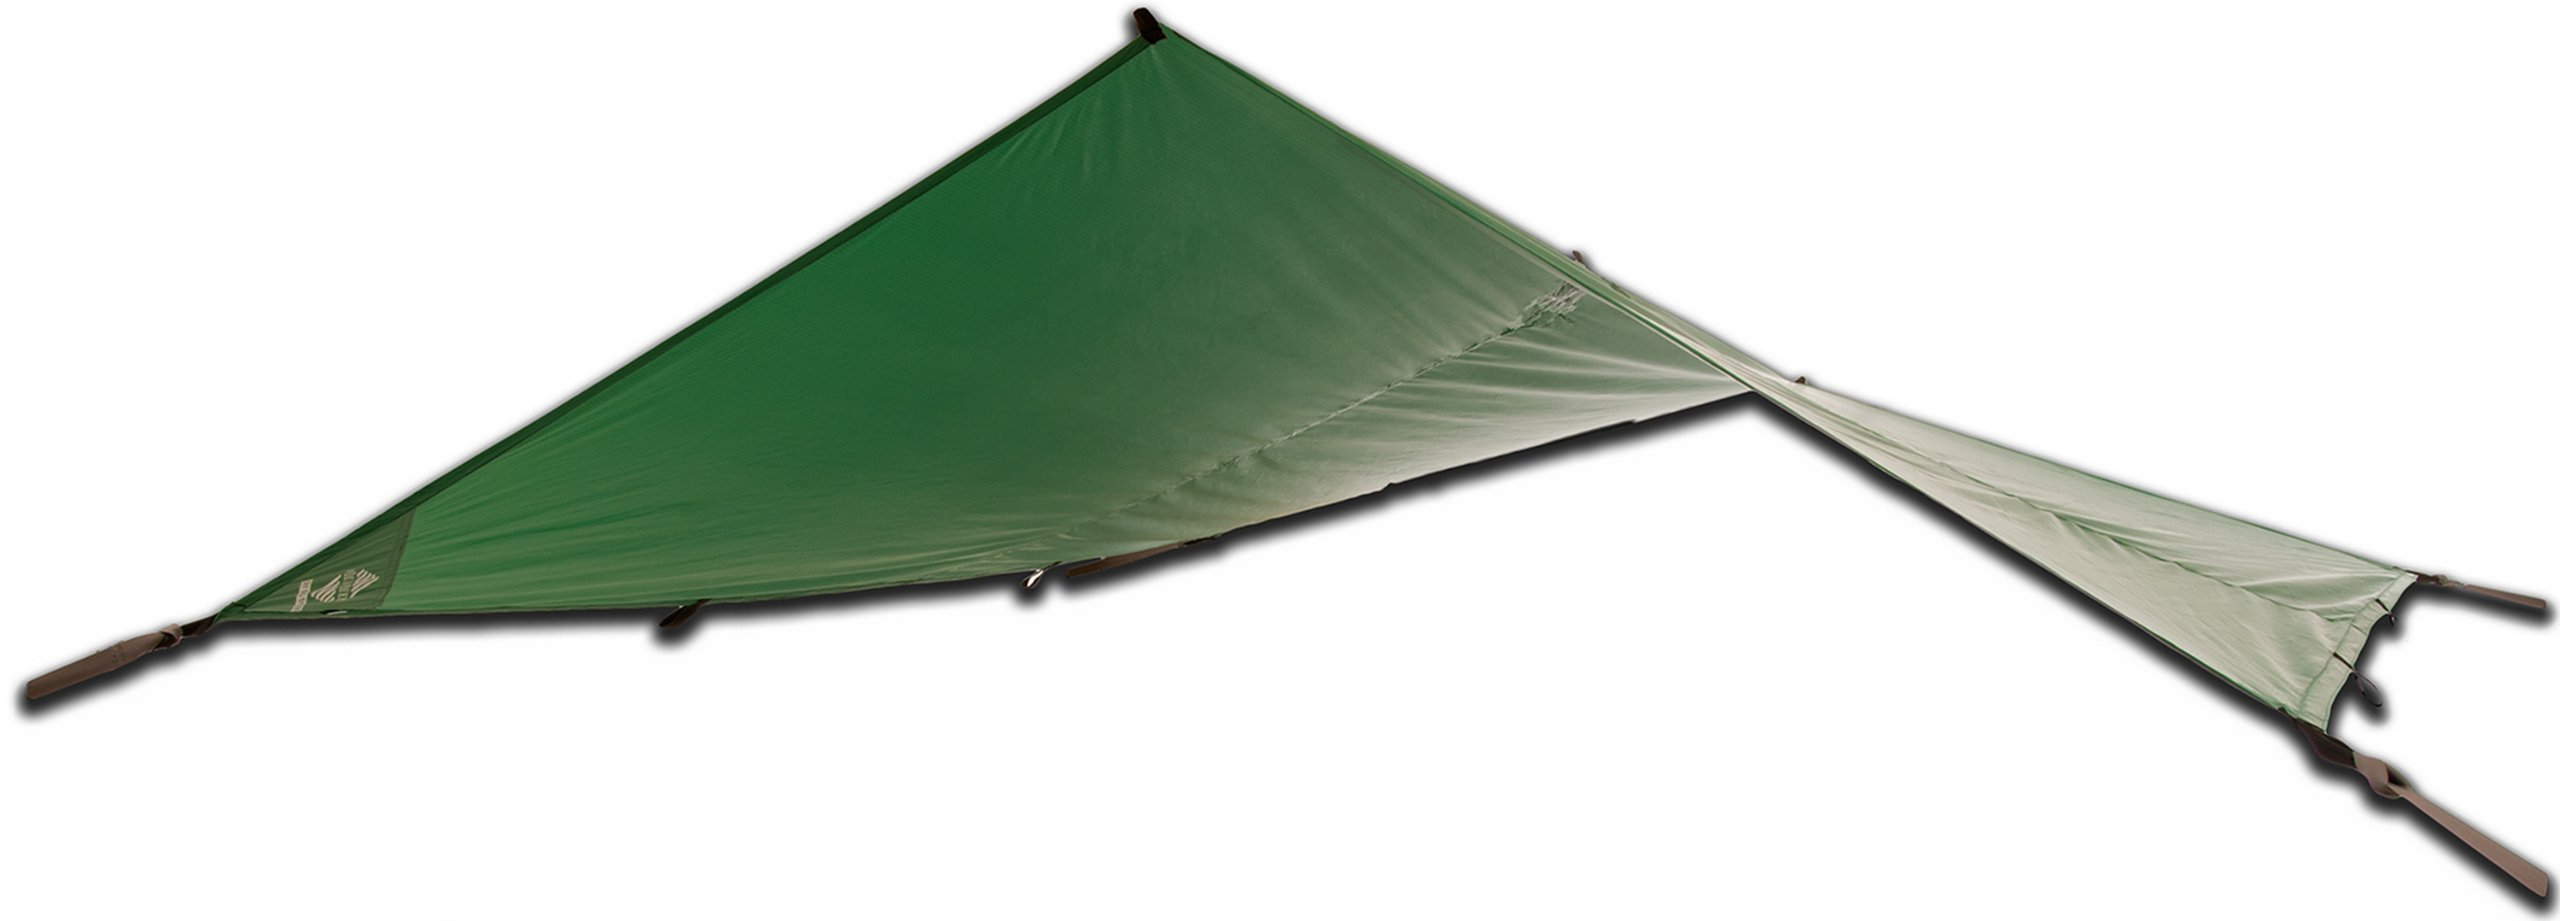 Aqua-Quest The Mummy Combo 2-pc Camping System - 100% Waterproof - 13 x 10 ft Large Guide Tarp - Green by Aqua Quest (Image #2)